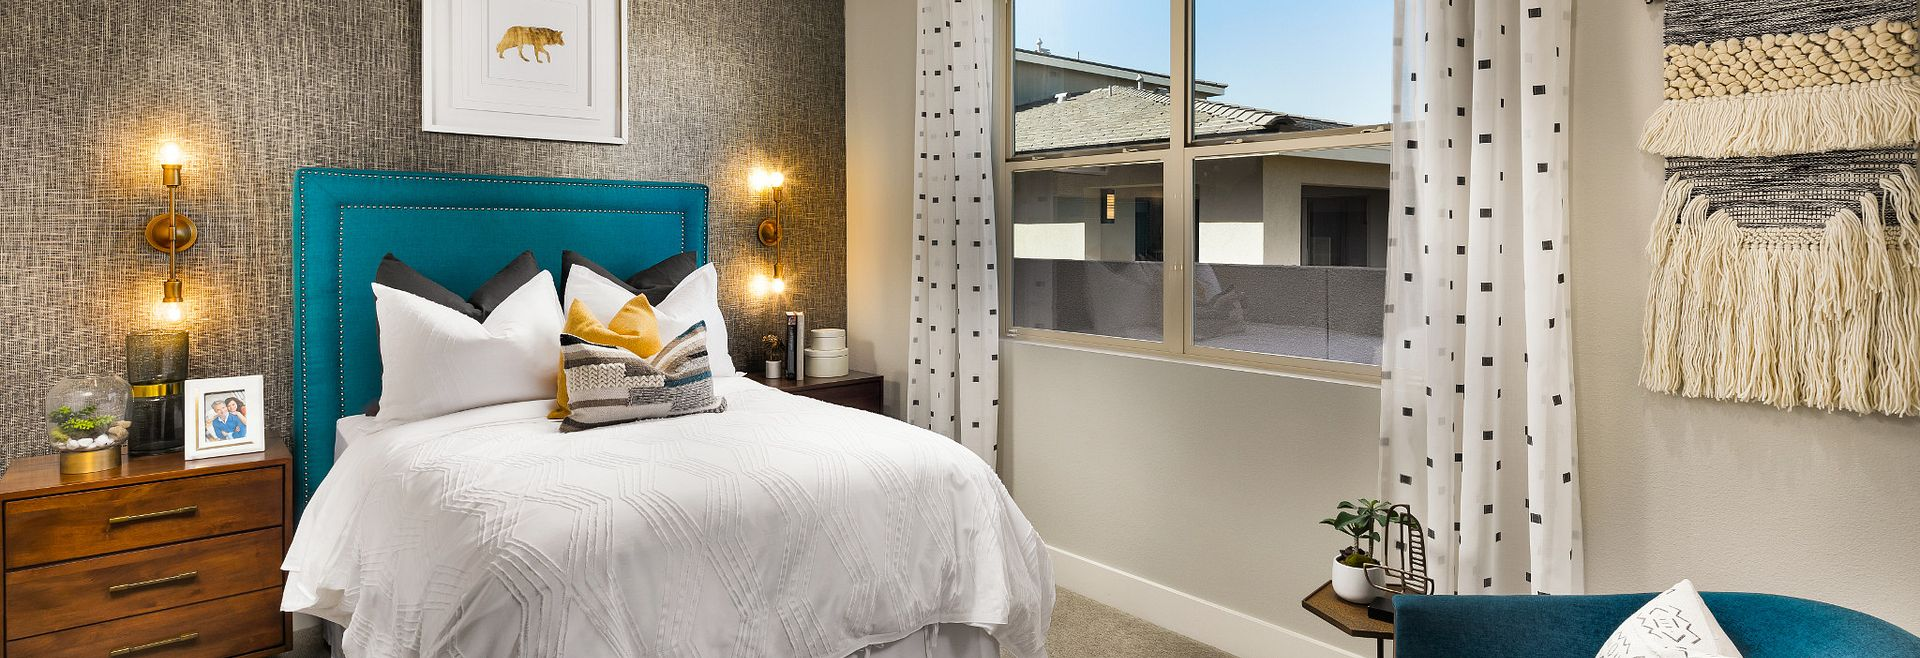 Trilogy Summerlin Splendor Guest Room